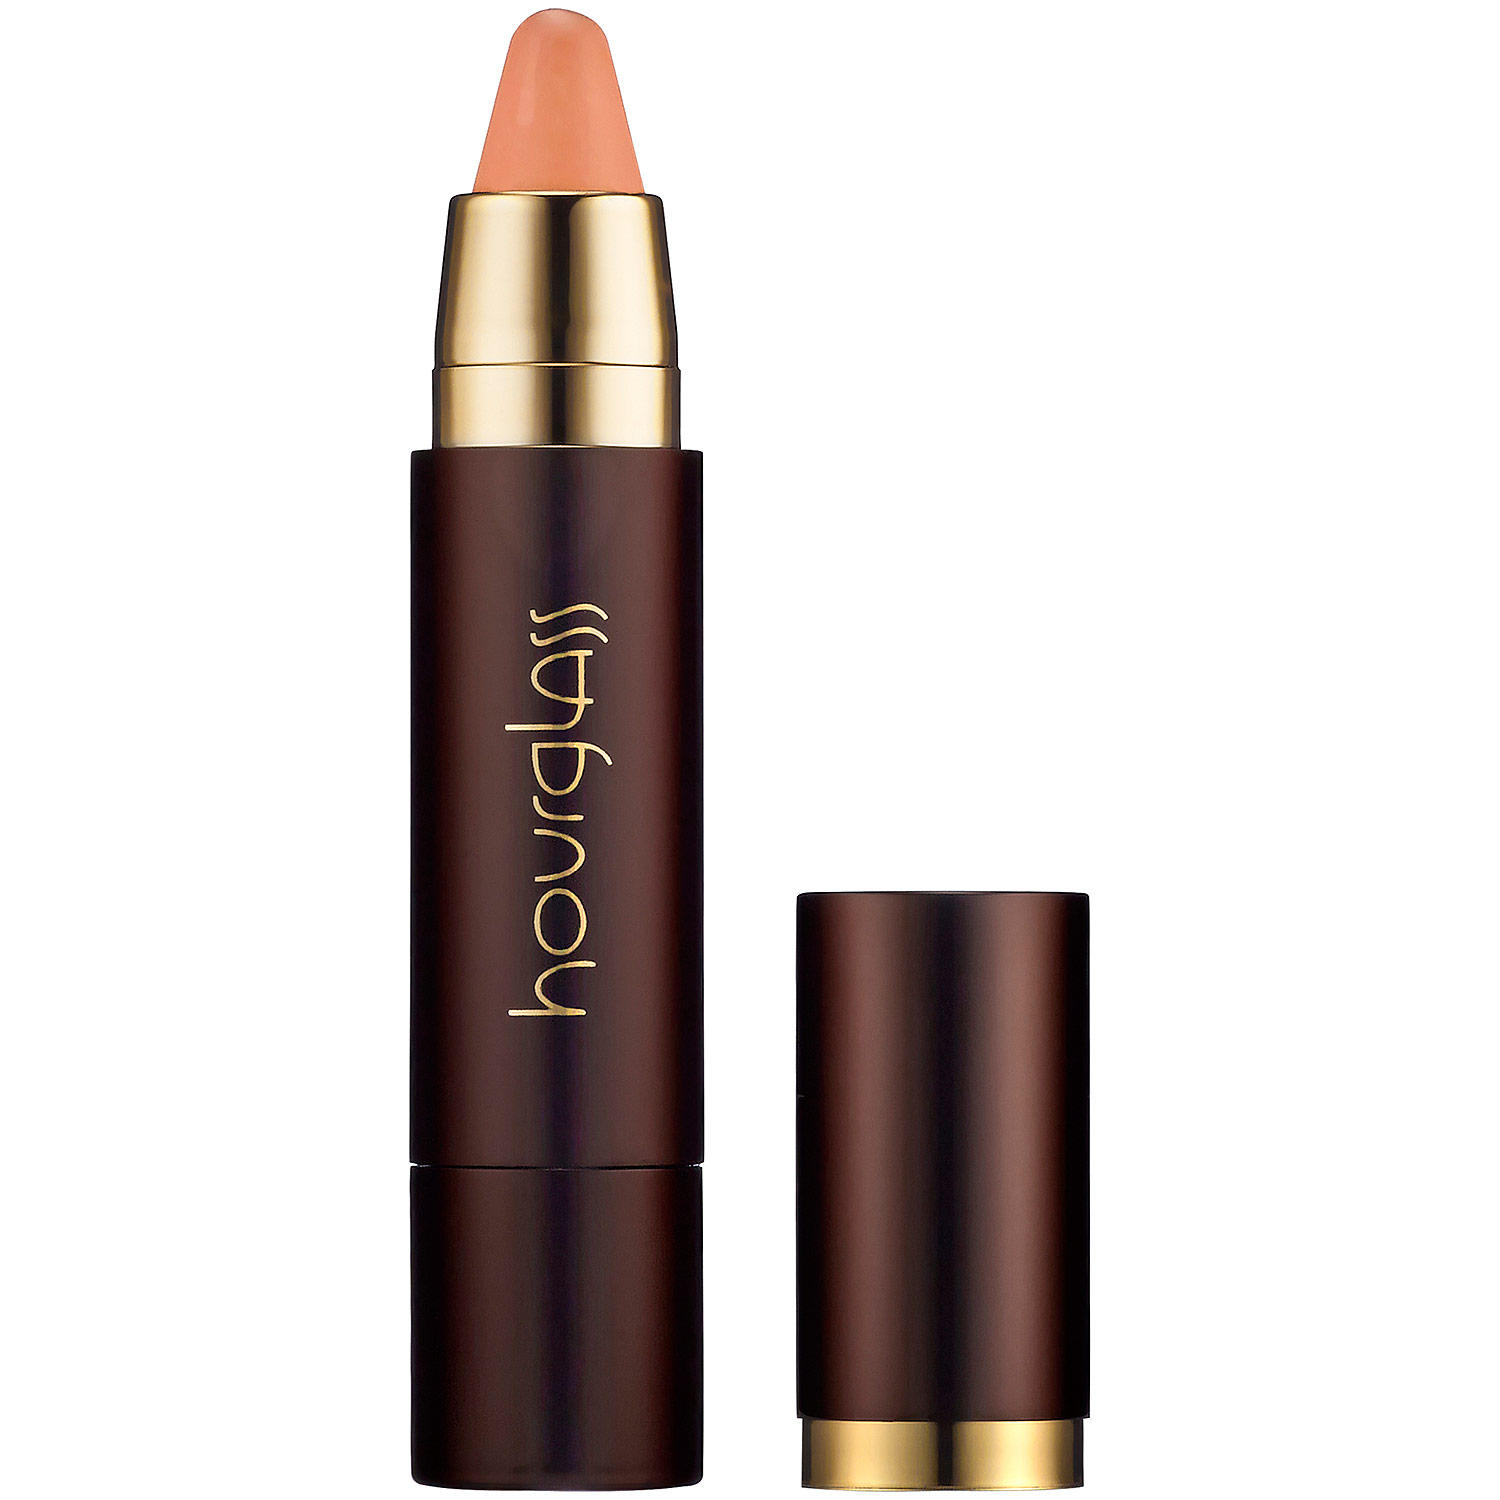 Hourglass Femme Nude Lip Stylo Nude No. 3